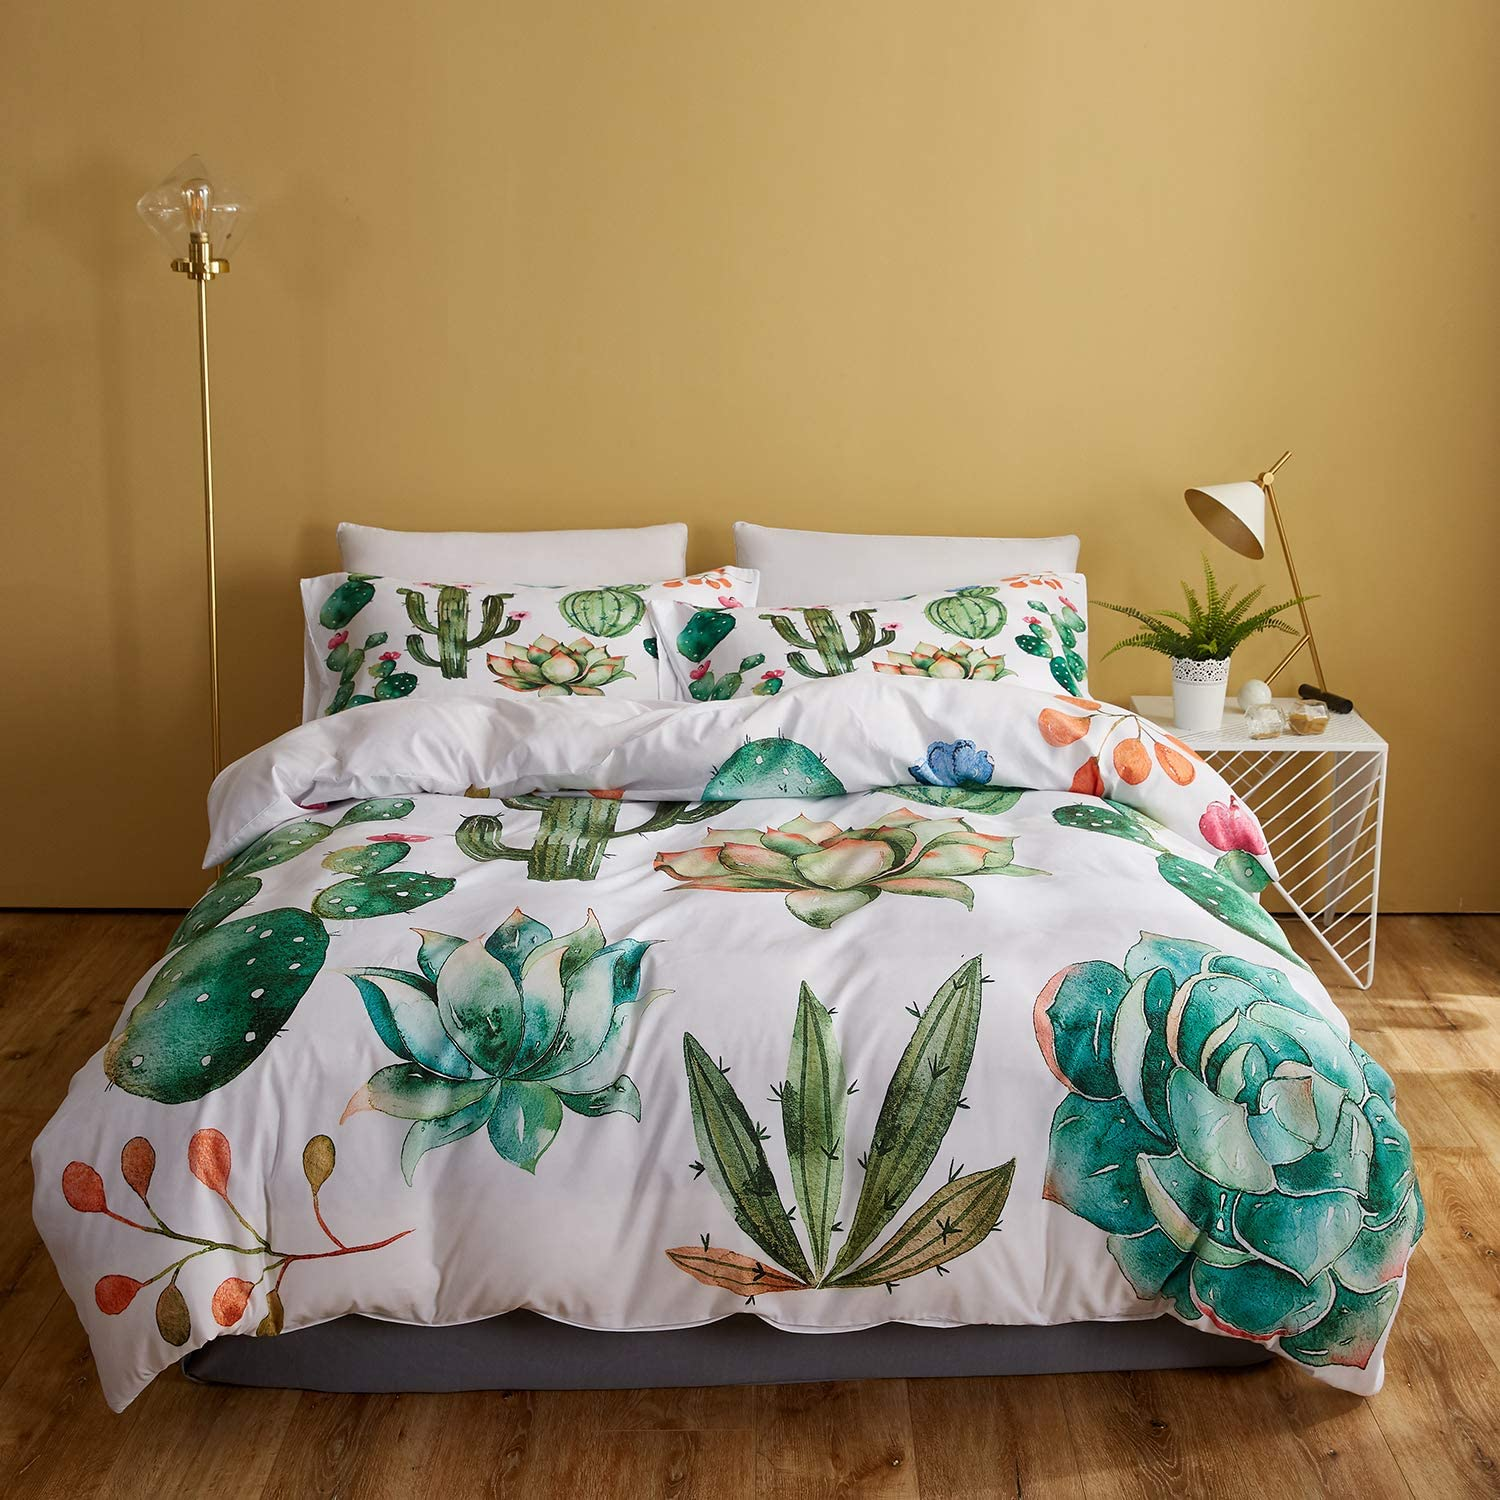 DEERHOME Cactus Duvet Cover Set,Hand Painted Watercolor Elements for Your Design with Succulent Plants,Cactus and More, Decorative 3 Piece Bedding Set with 2 Pillow Shams, Twin Size